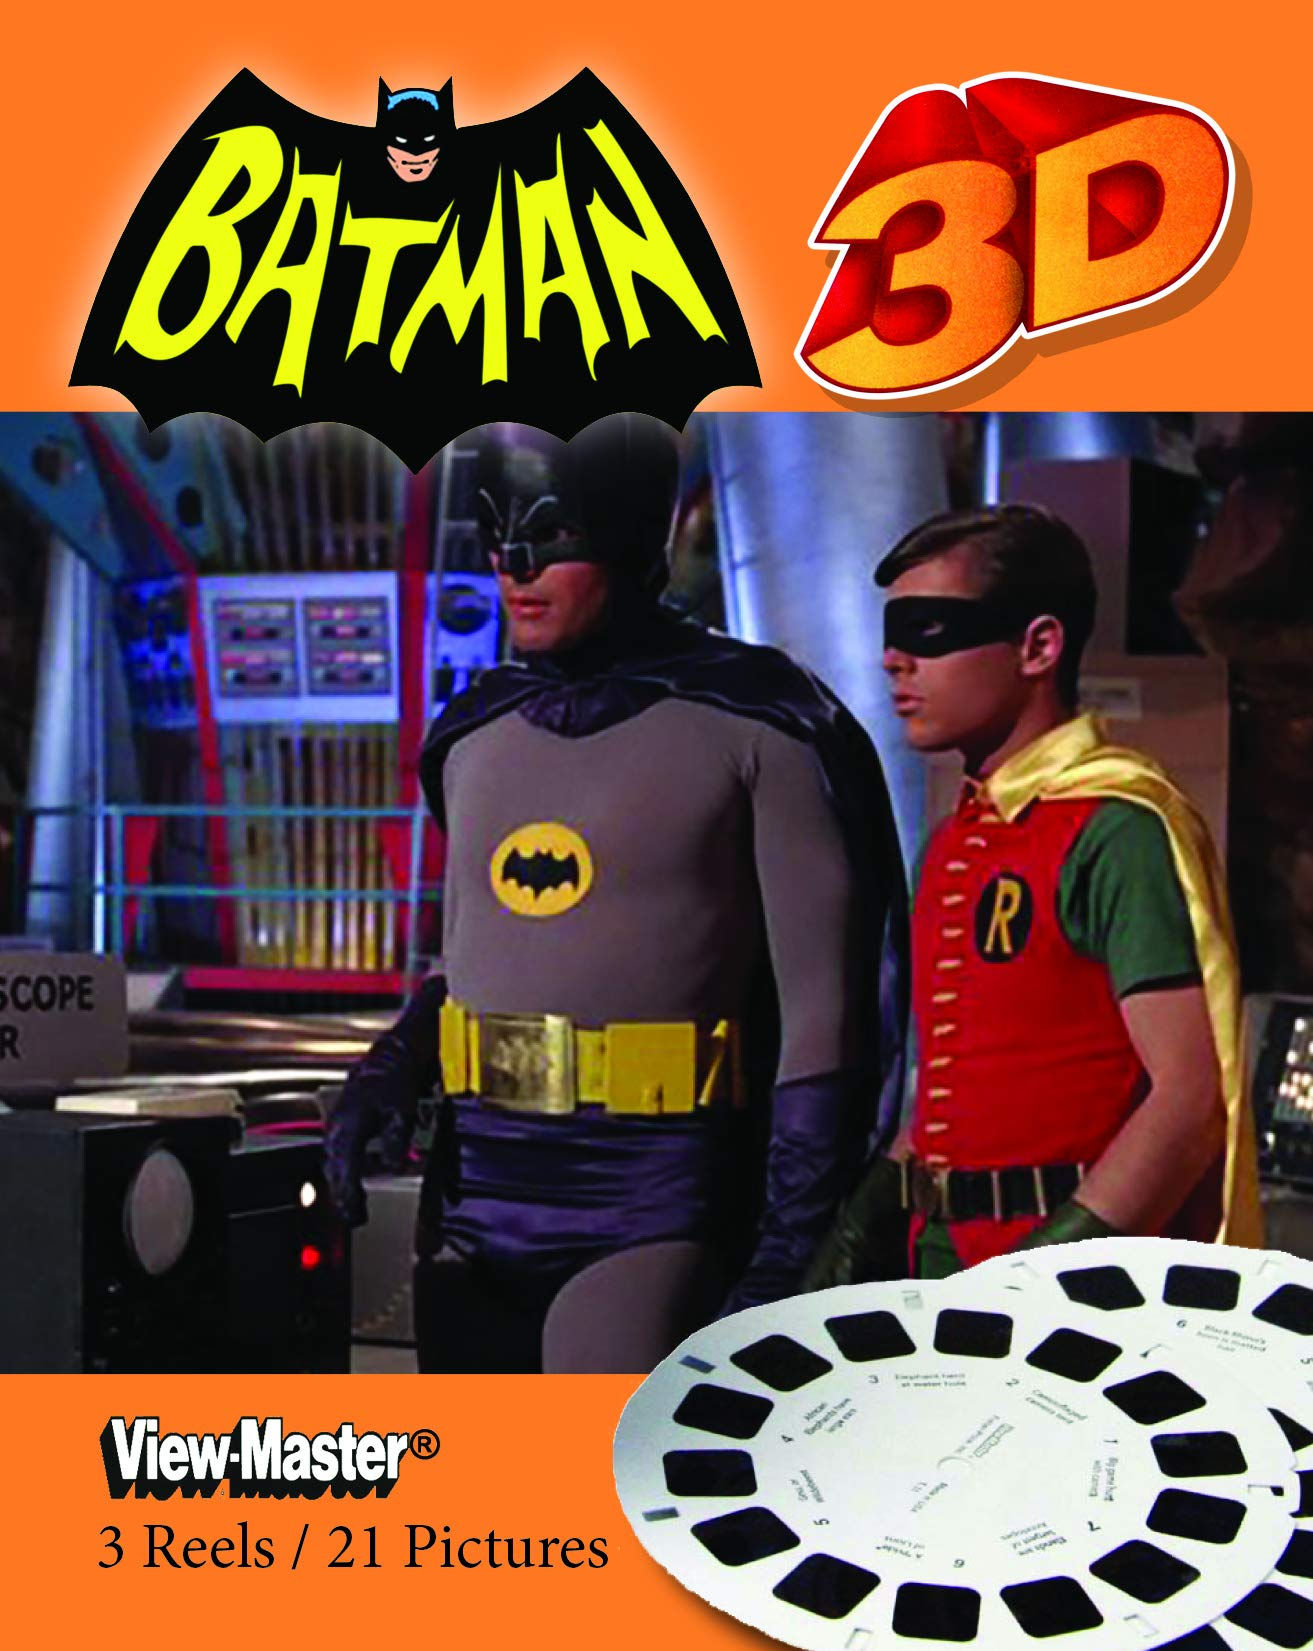 Classic ViewMaster - Batman - 1960s TV Show - 3 Reel Packet - Unsold store stock - never opened by 3Dstereo ViewMaster